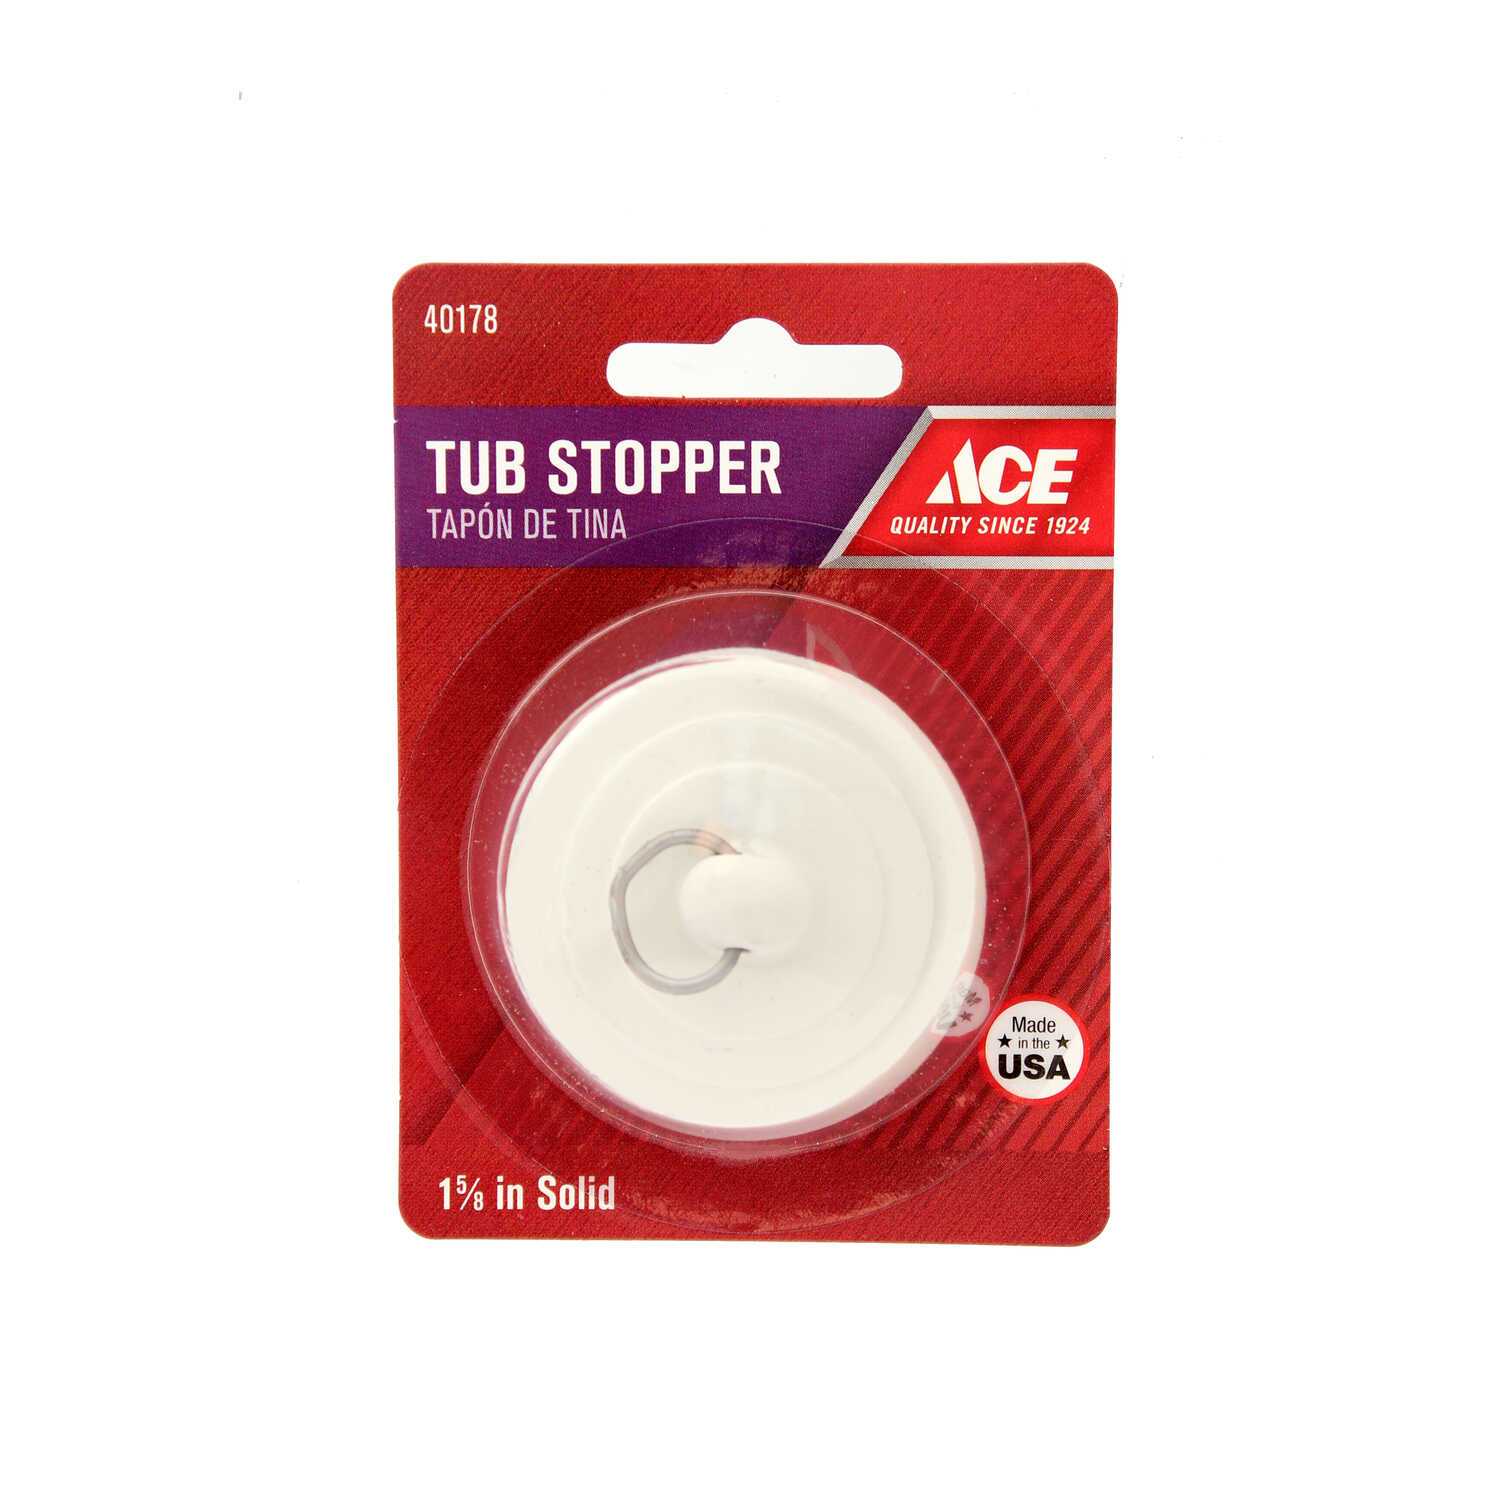 Ace  1-5/8 in. Dia. Tub Stopper  Rubber  White